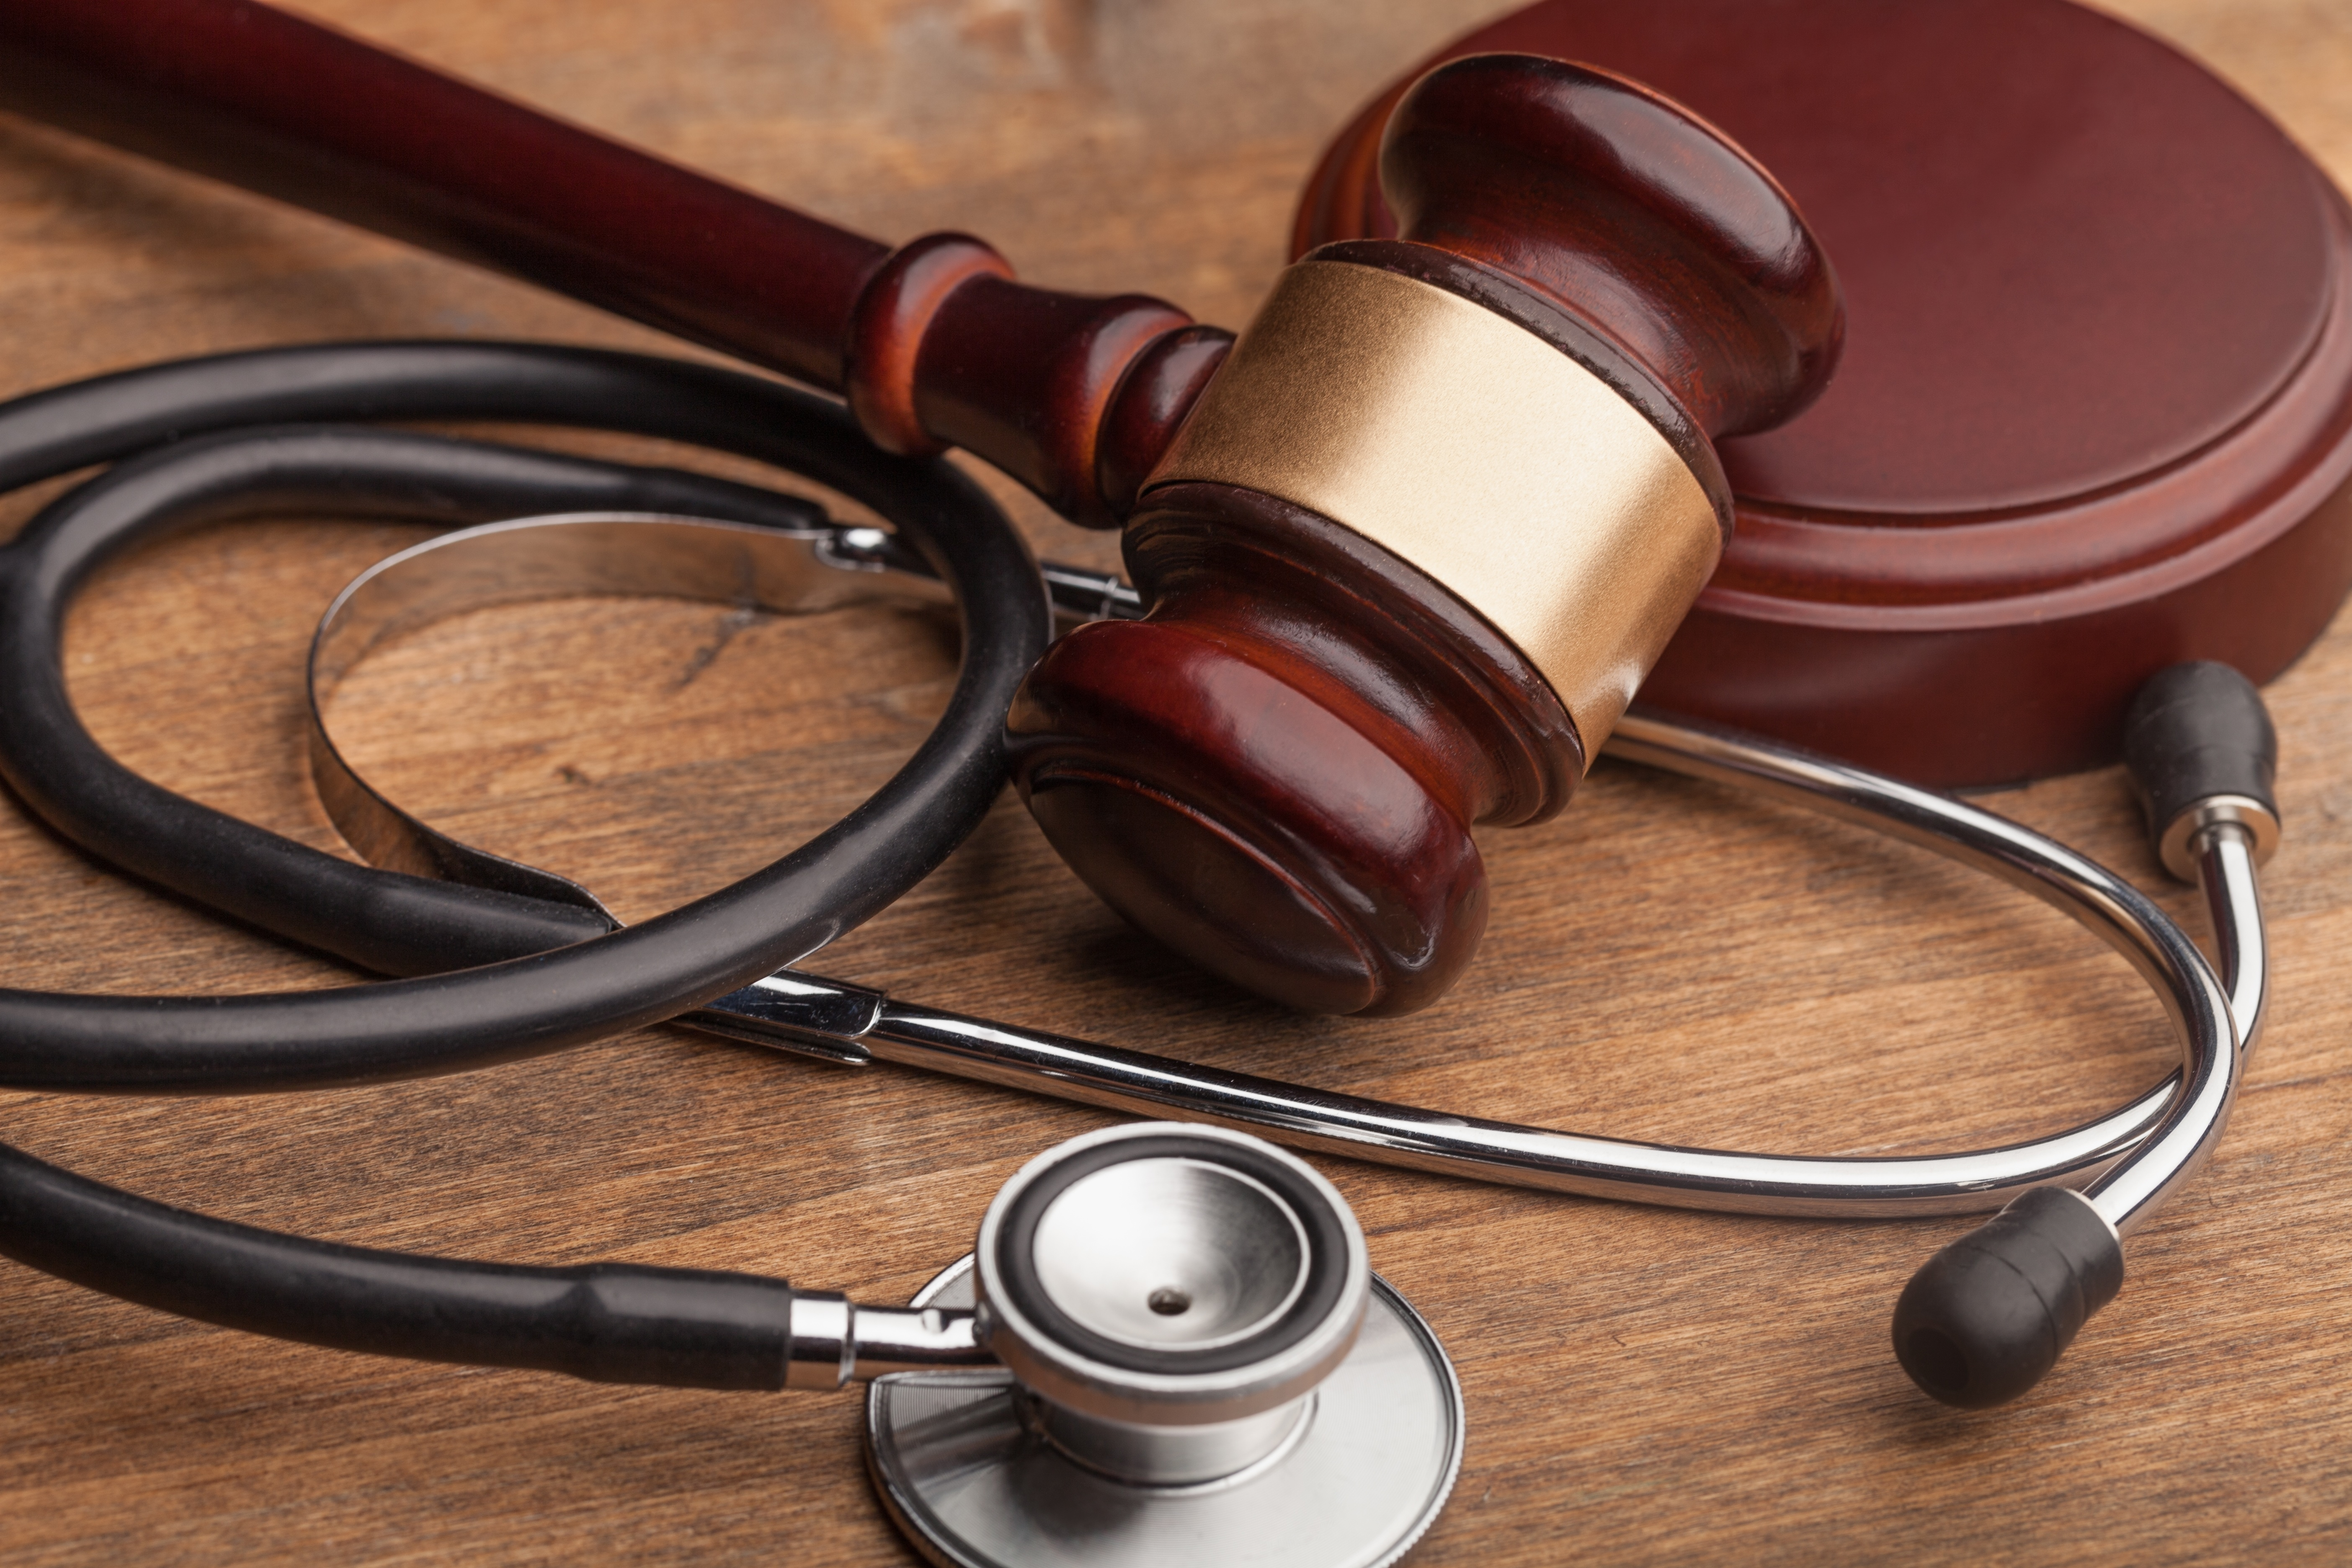 Wrong-site Surgery is Medical Malpractice in Florida